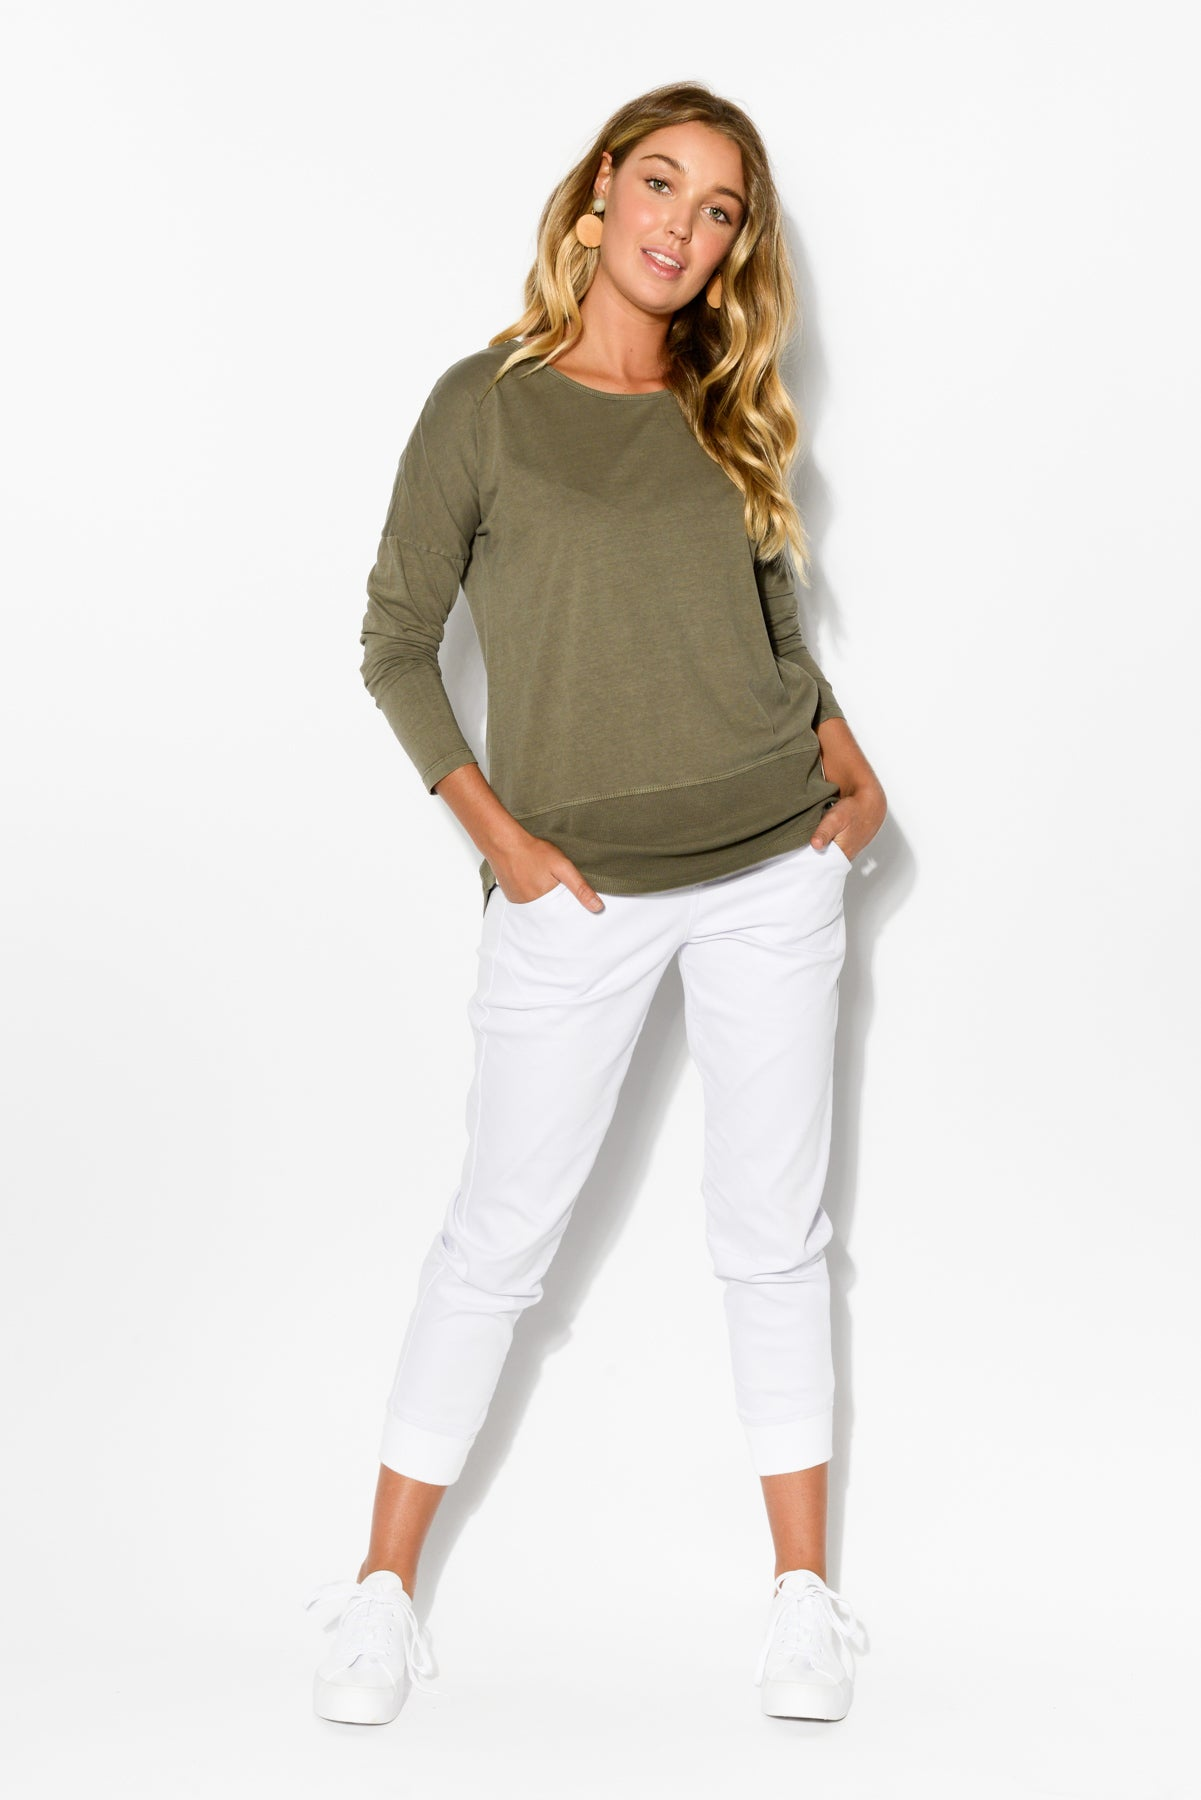 9298383b7202 Khaki Rib Long Sleeve Cotton Tee - Blue Bungalow ...